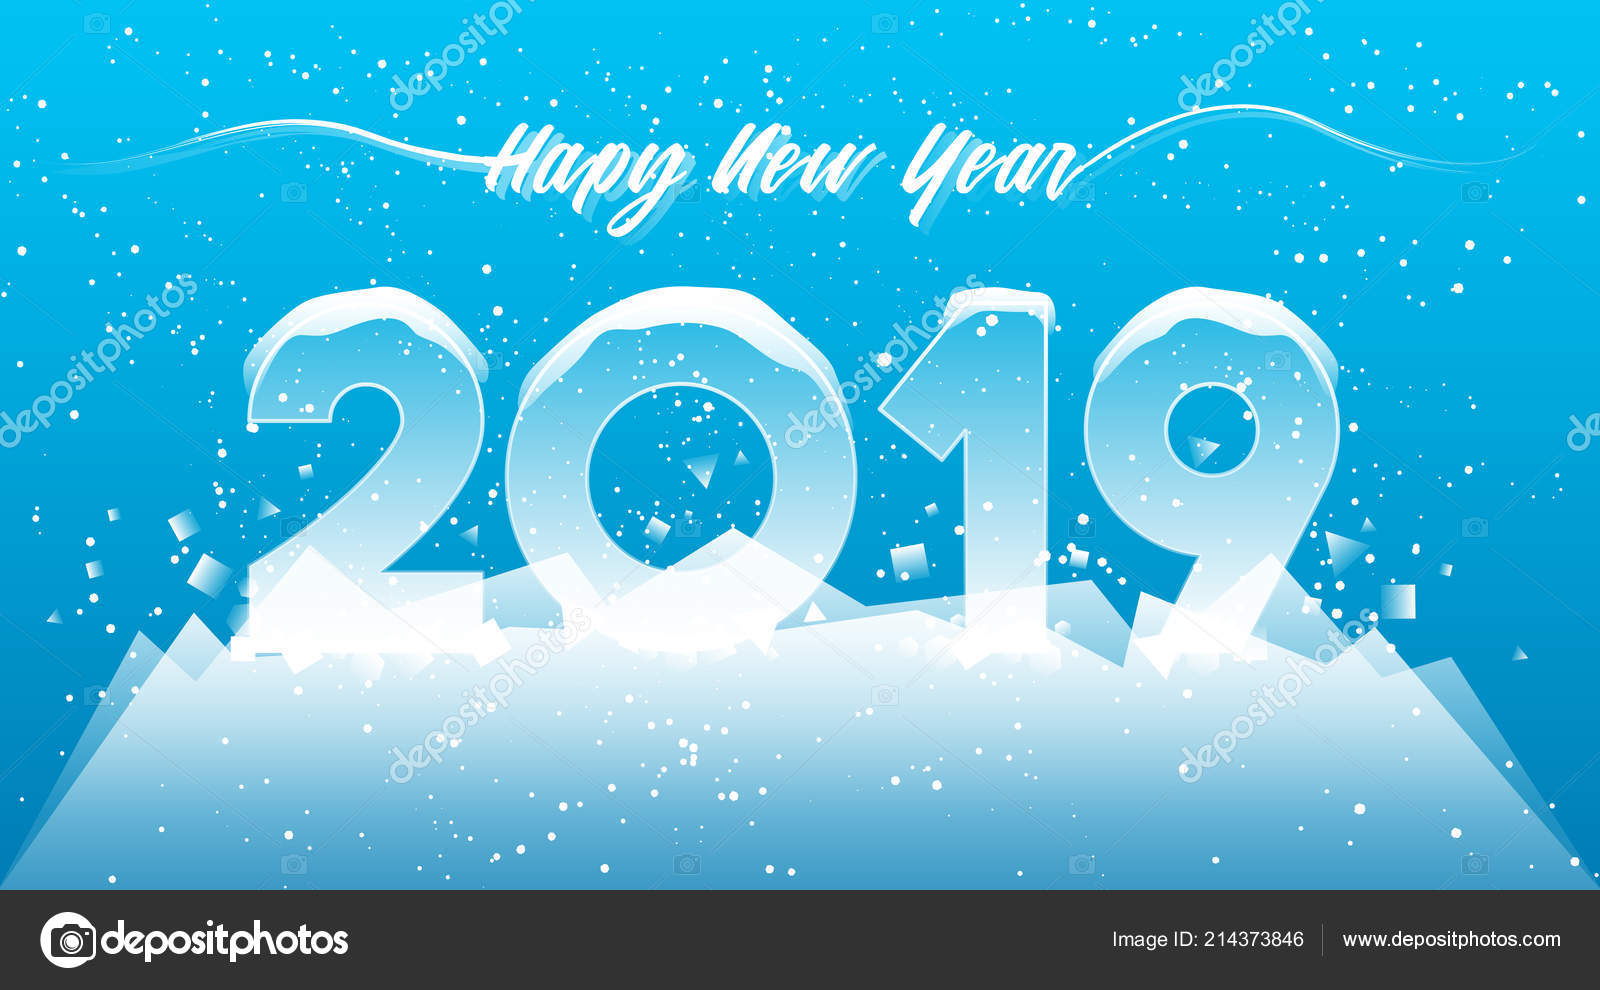 2019 happy new year card design 2019 winter season concept stock vector